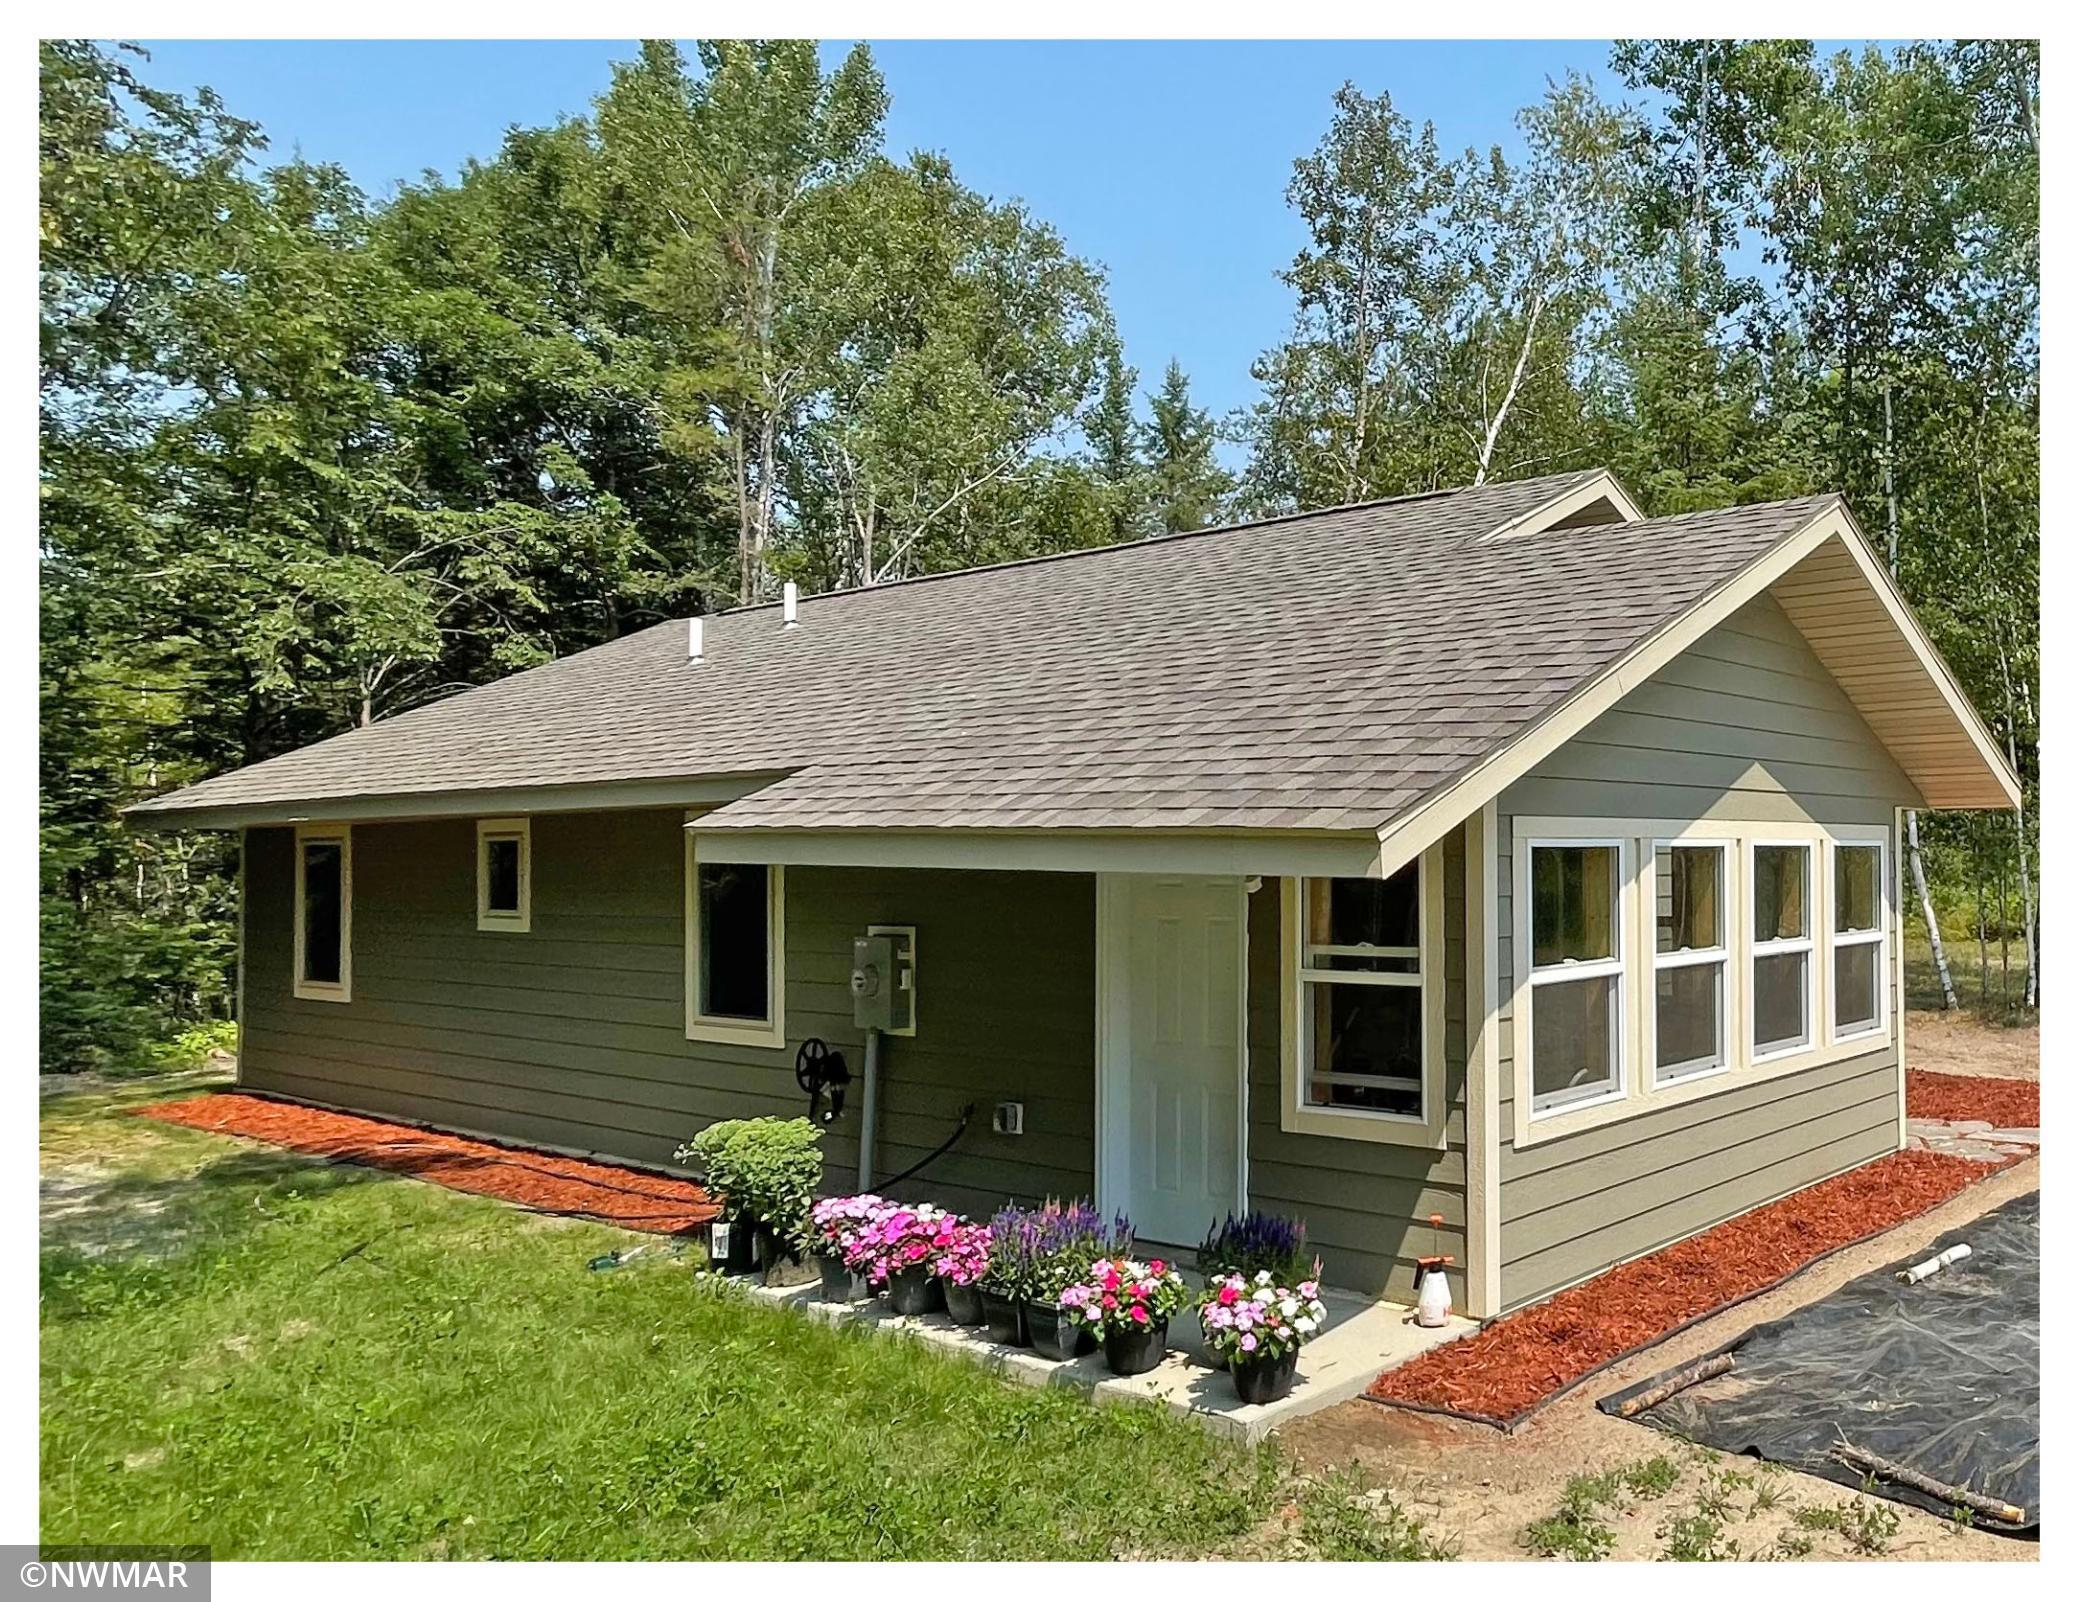 Attention buyers - come be a part of the Wildwood Estates with this newly constructed one level 1BR/1BA home being offered with 9 acres. The development sits in the heart of the of the Cass Lake chain and is only a couple miles from Cedar Lake Casino. Features an efficient 1000 sq ft of open living, 2 sources of heat and ac. Home has handicap accessible bath with walk-in shower. Oversized solid 6 panel doors makes this home easy for those that may need handicap accessibility. Come and be a part of something new!